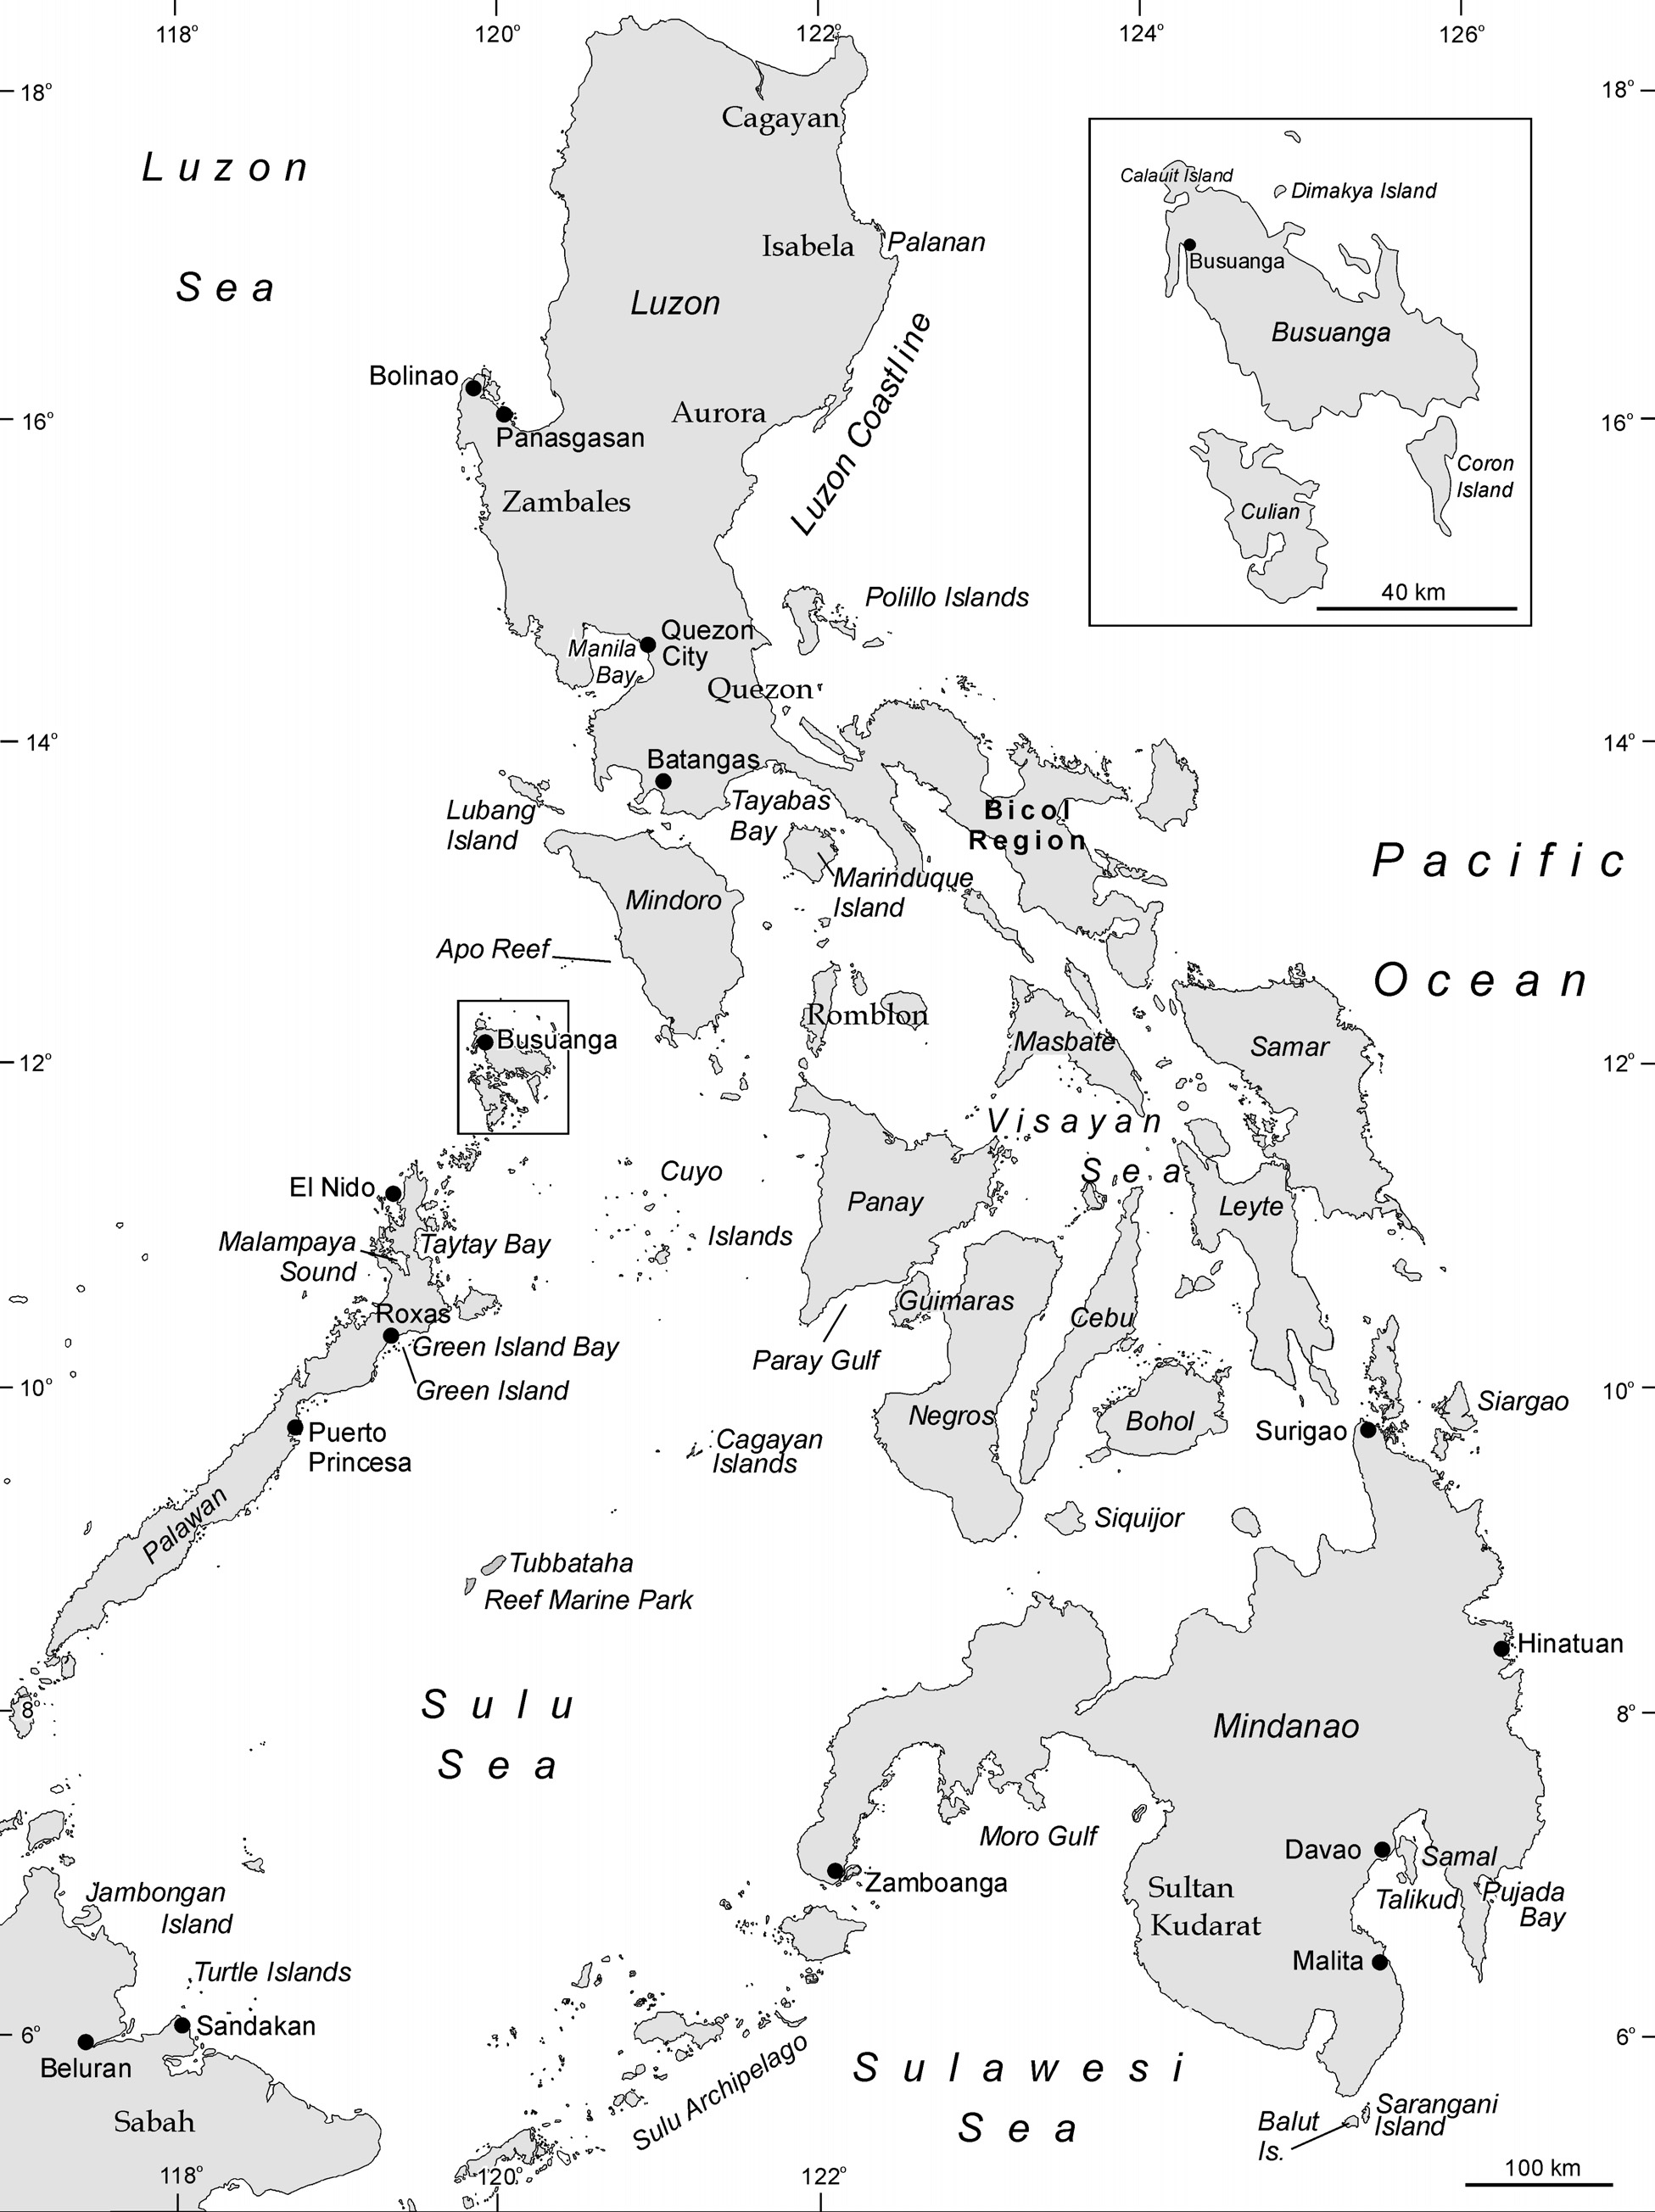 Figure 4.3 The Philippines showing place names mentioned in the text.